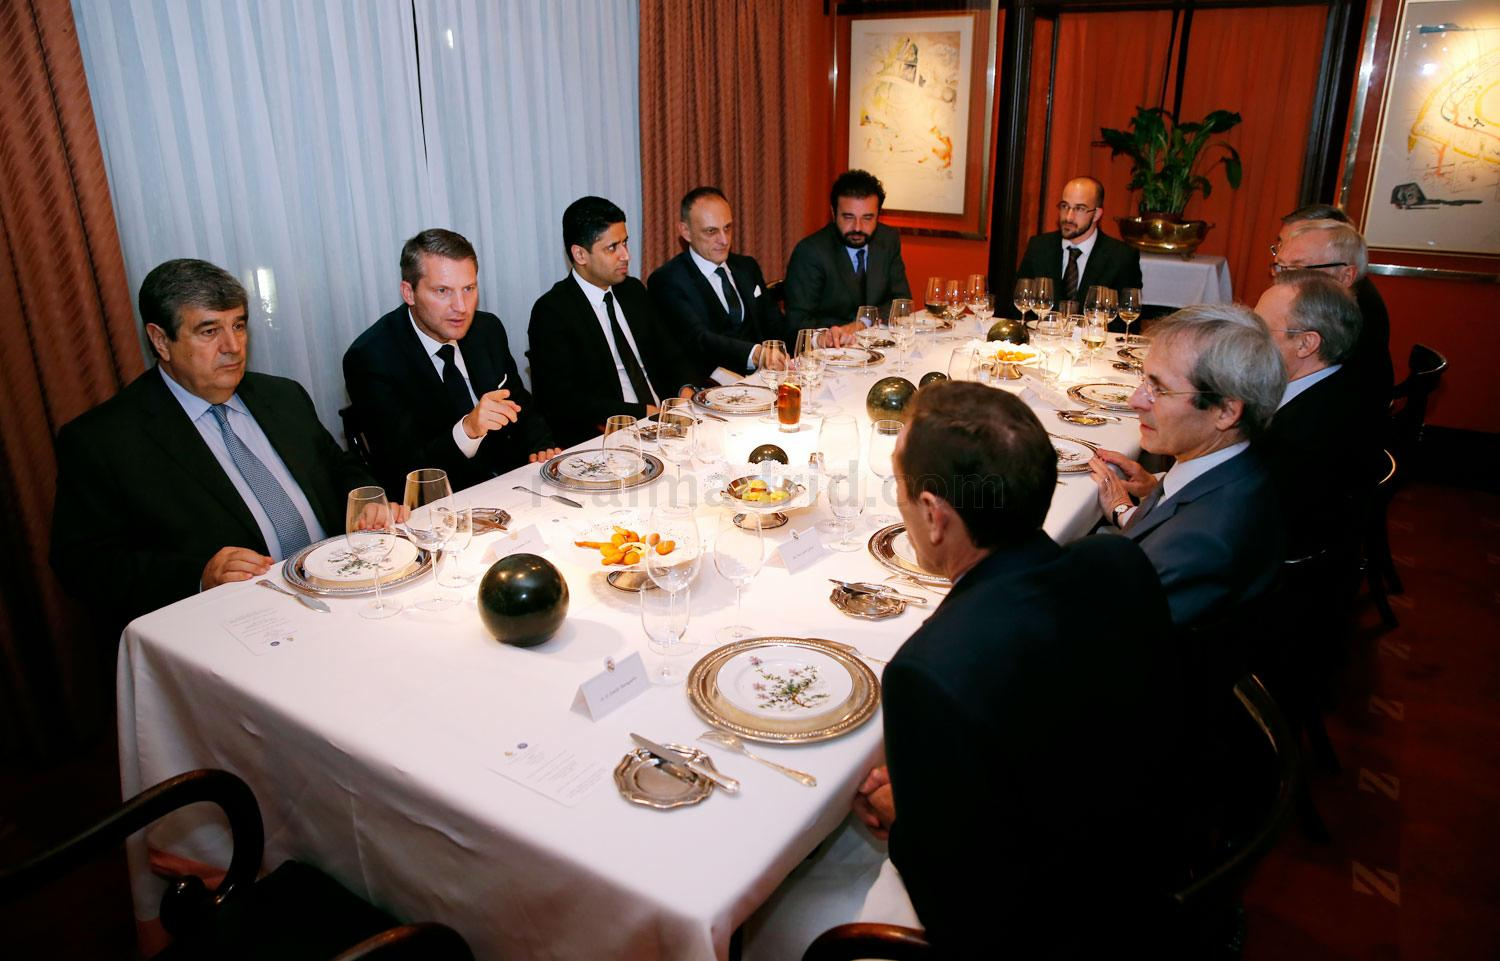 Real Madrid - Cena de directivas - 02-11-2015